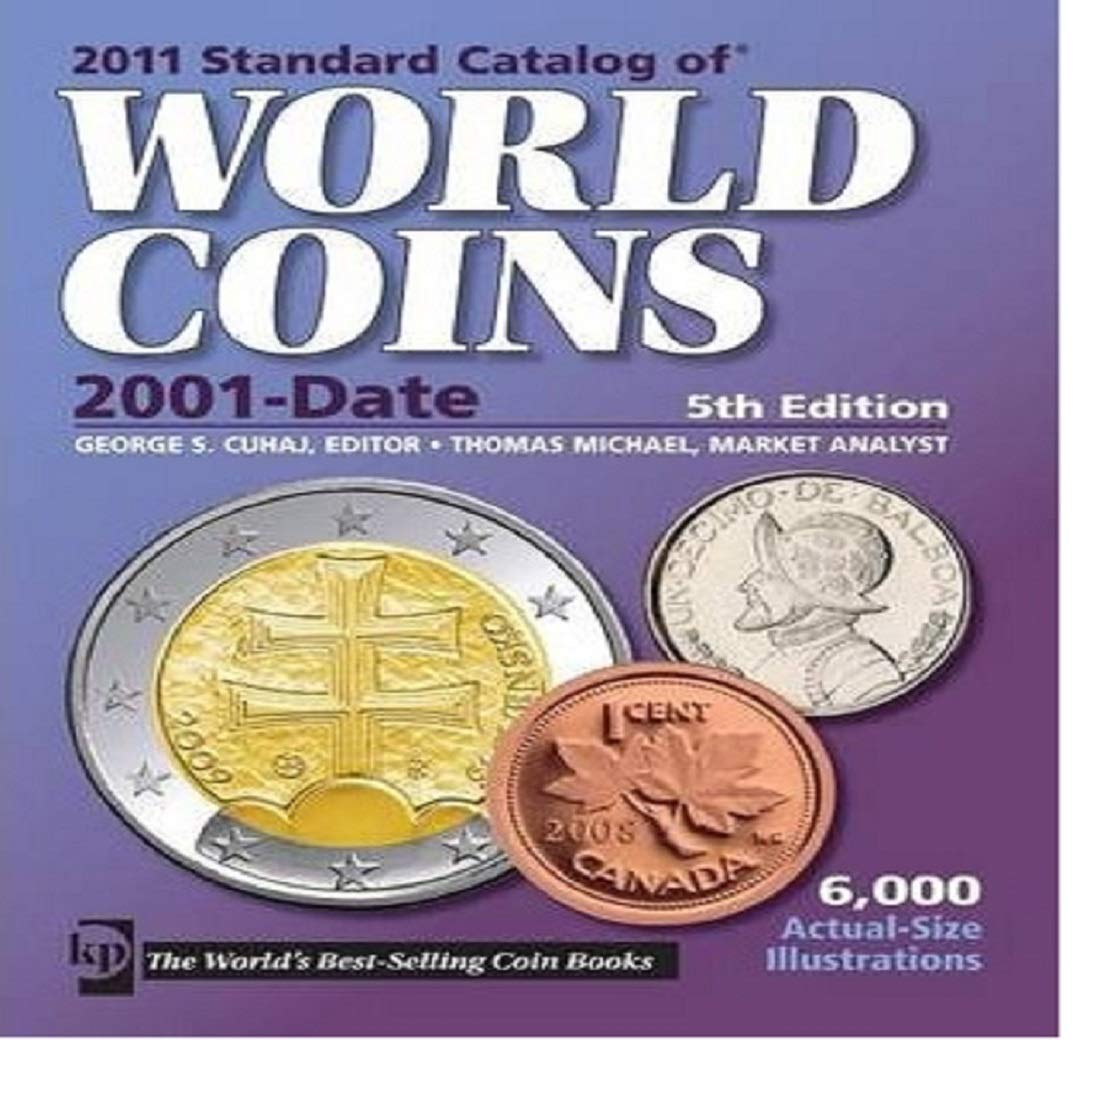 2011 Standard Catalog Of World Coins 2001 Date Cuhaj George S Michael Thomas 9781440211607 Amazon Com Books